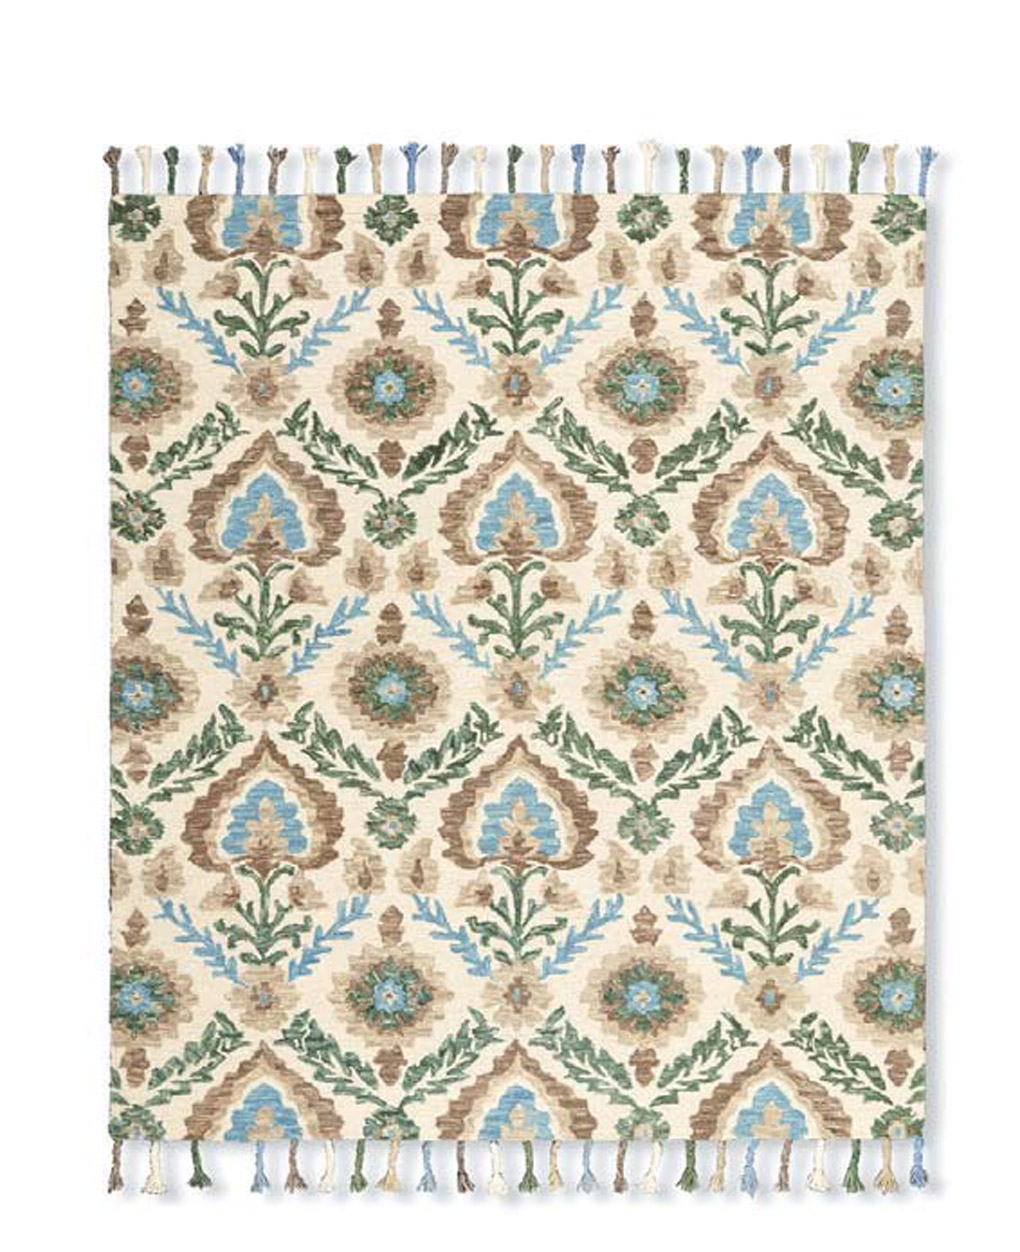 Floral patterned cream, green and blue rug with tassels.